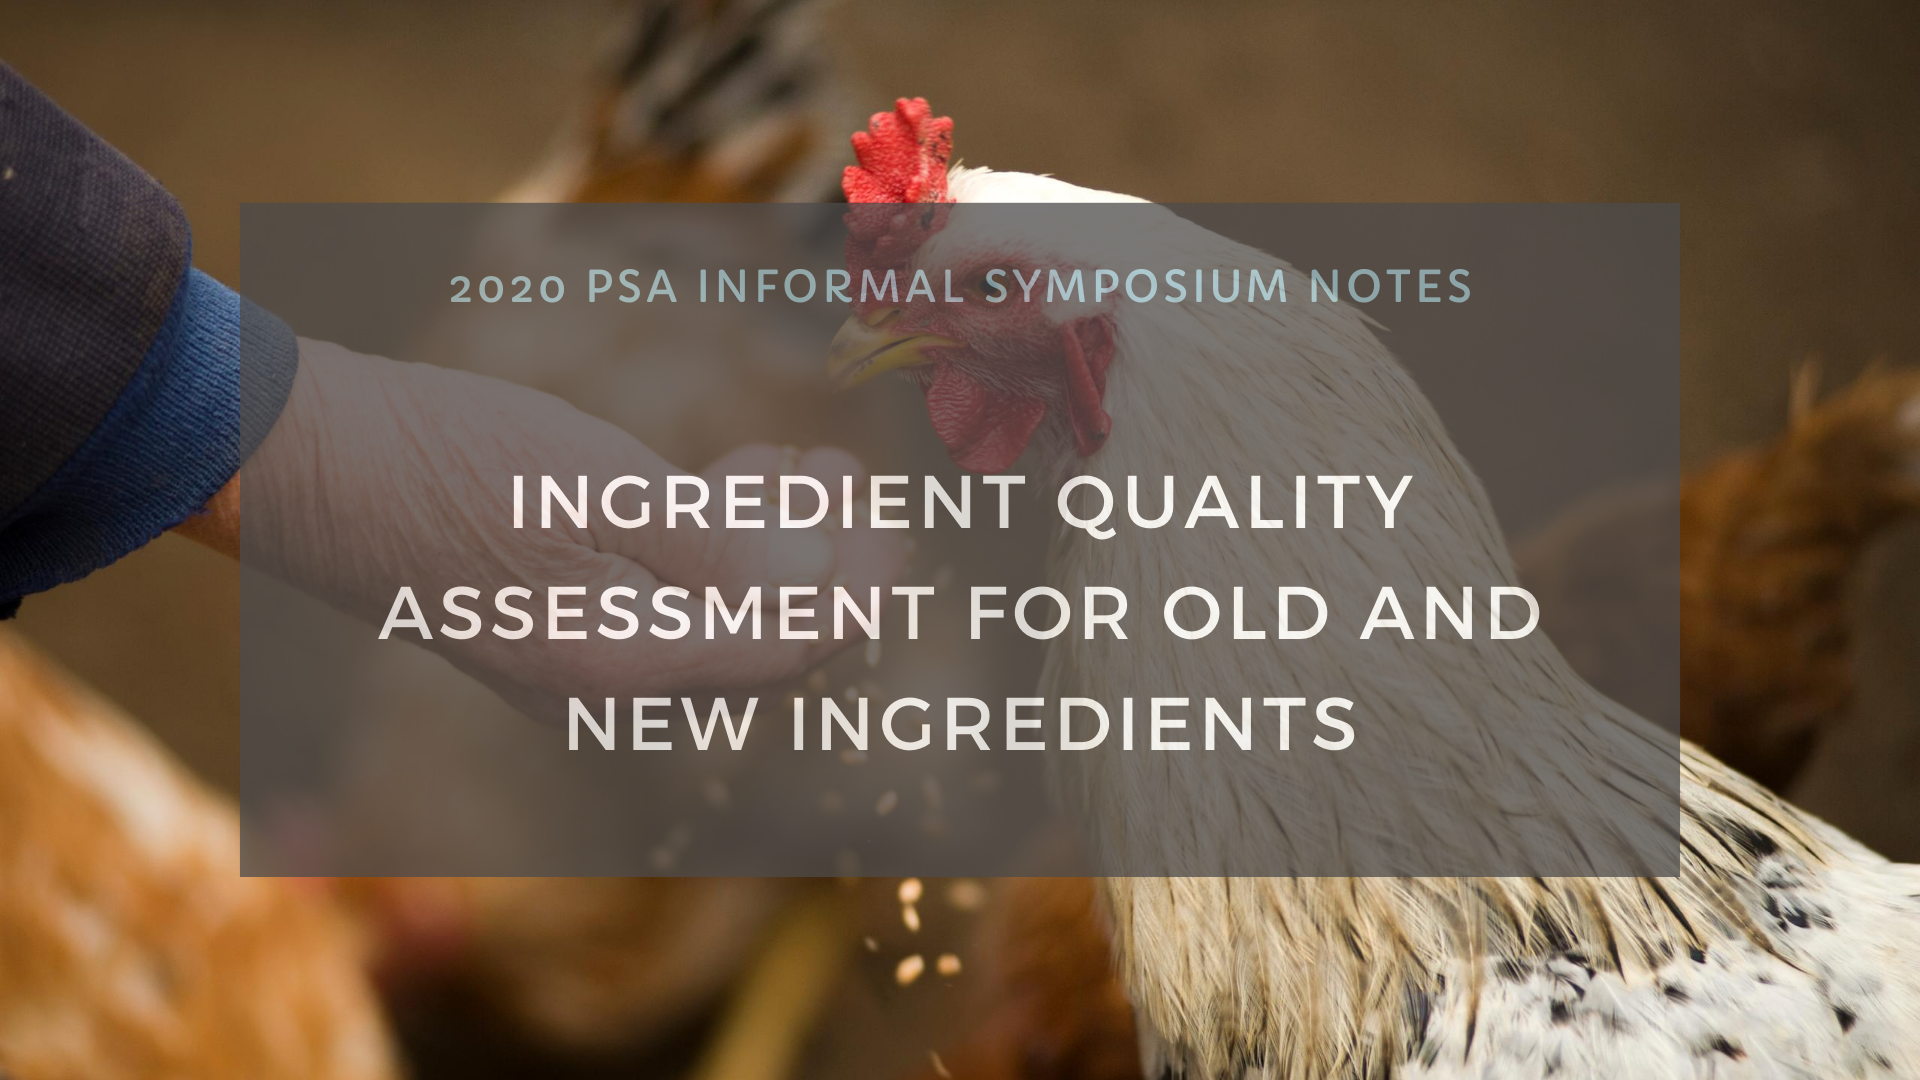 Ingredient Quality Assessment for Old and New Ingredients | PSA Informal Nutrition Symposium Notes